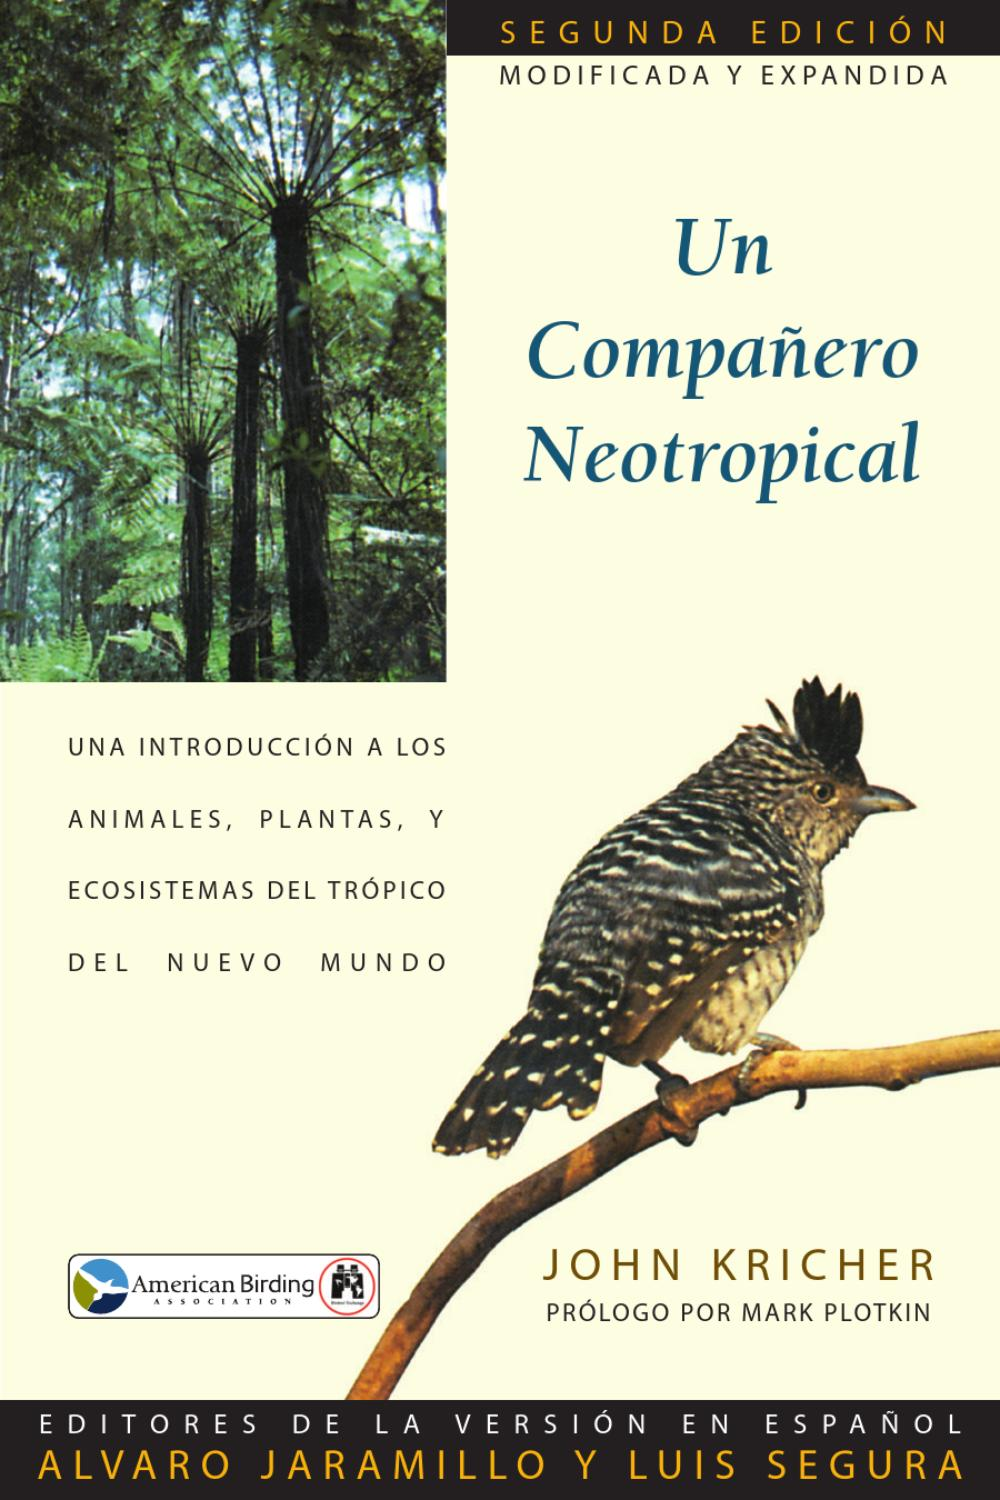 Un Compañero Neotropical by Latitud Ecuador - issuu